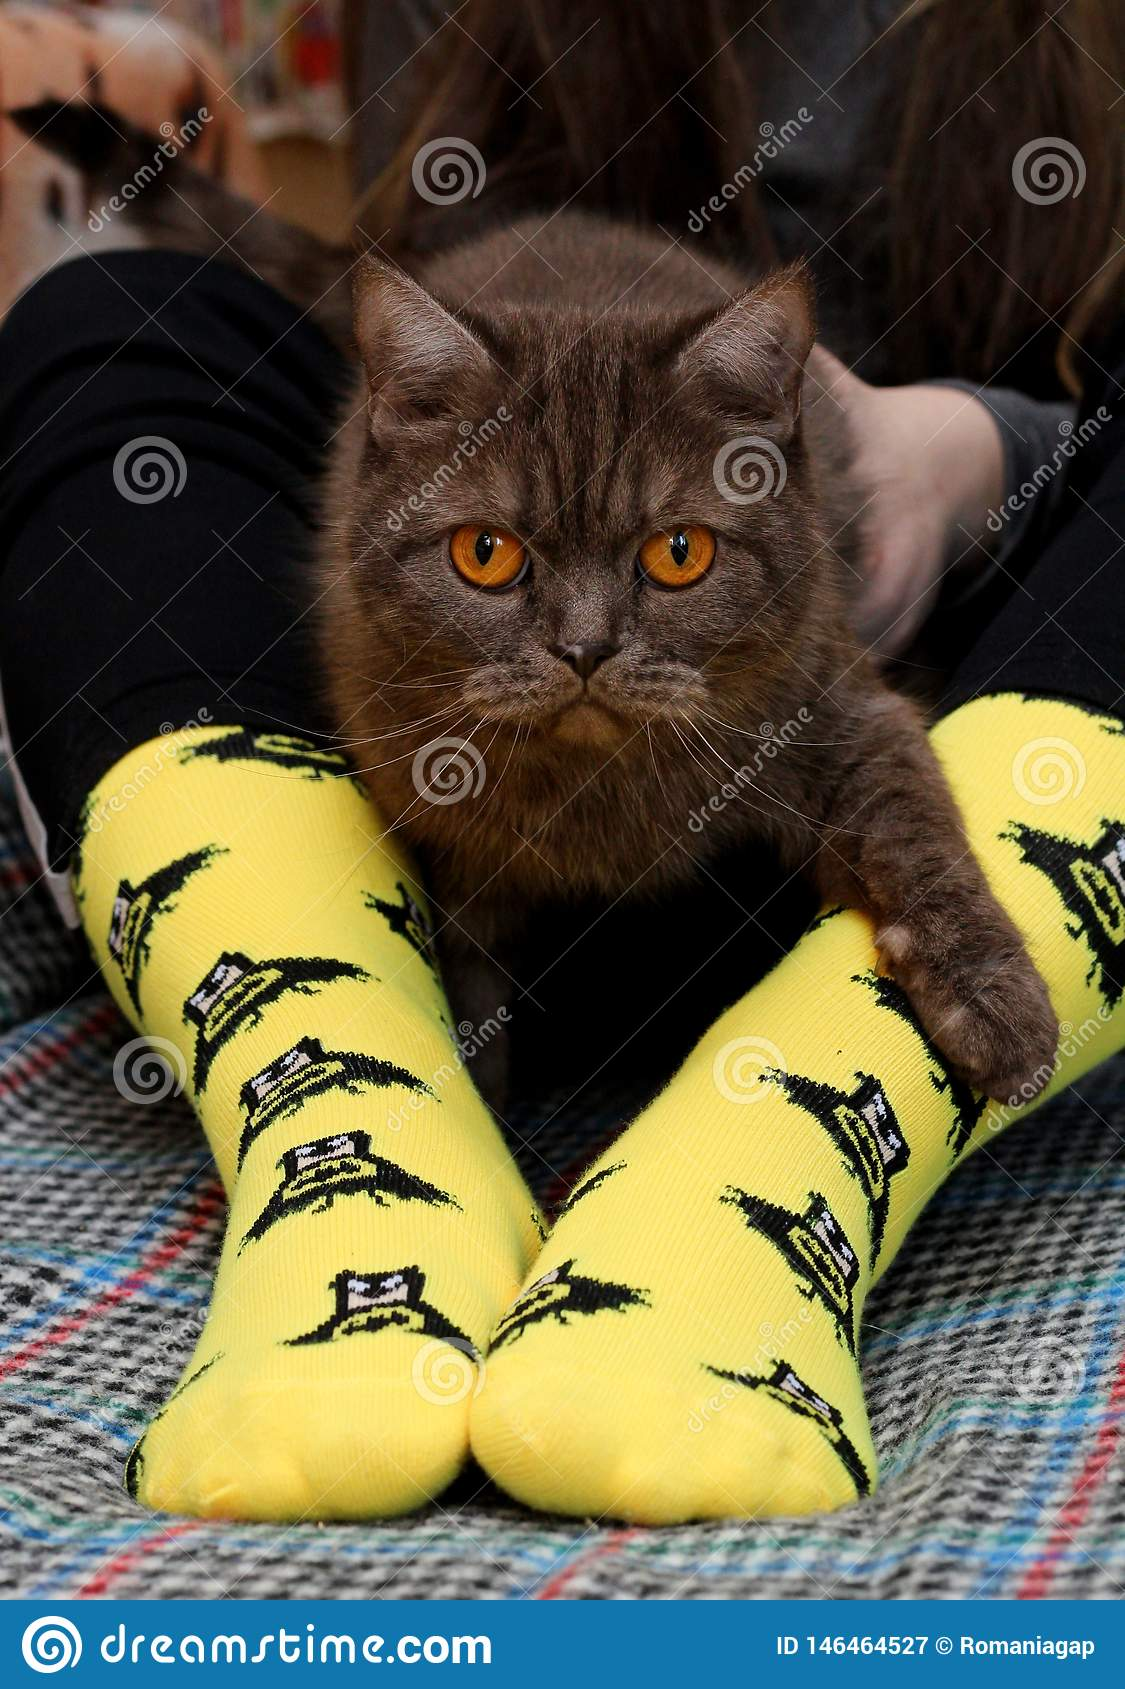 Teen girl with sad Scottish cat on knees sitting on couch. Yellow socks with black Batman pattern. Front view